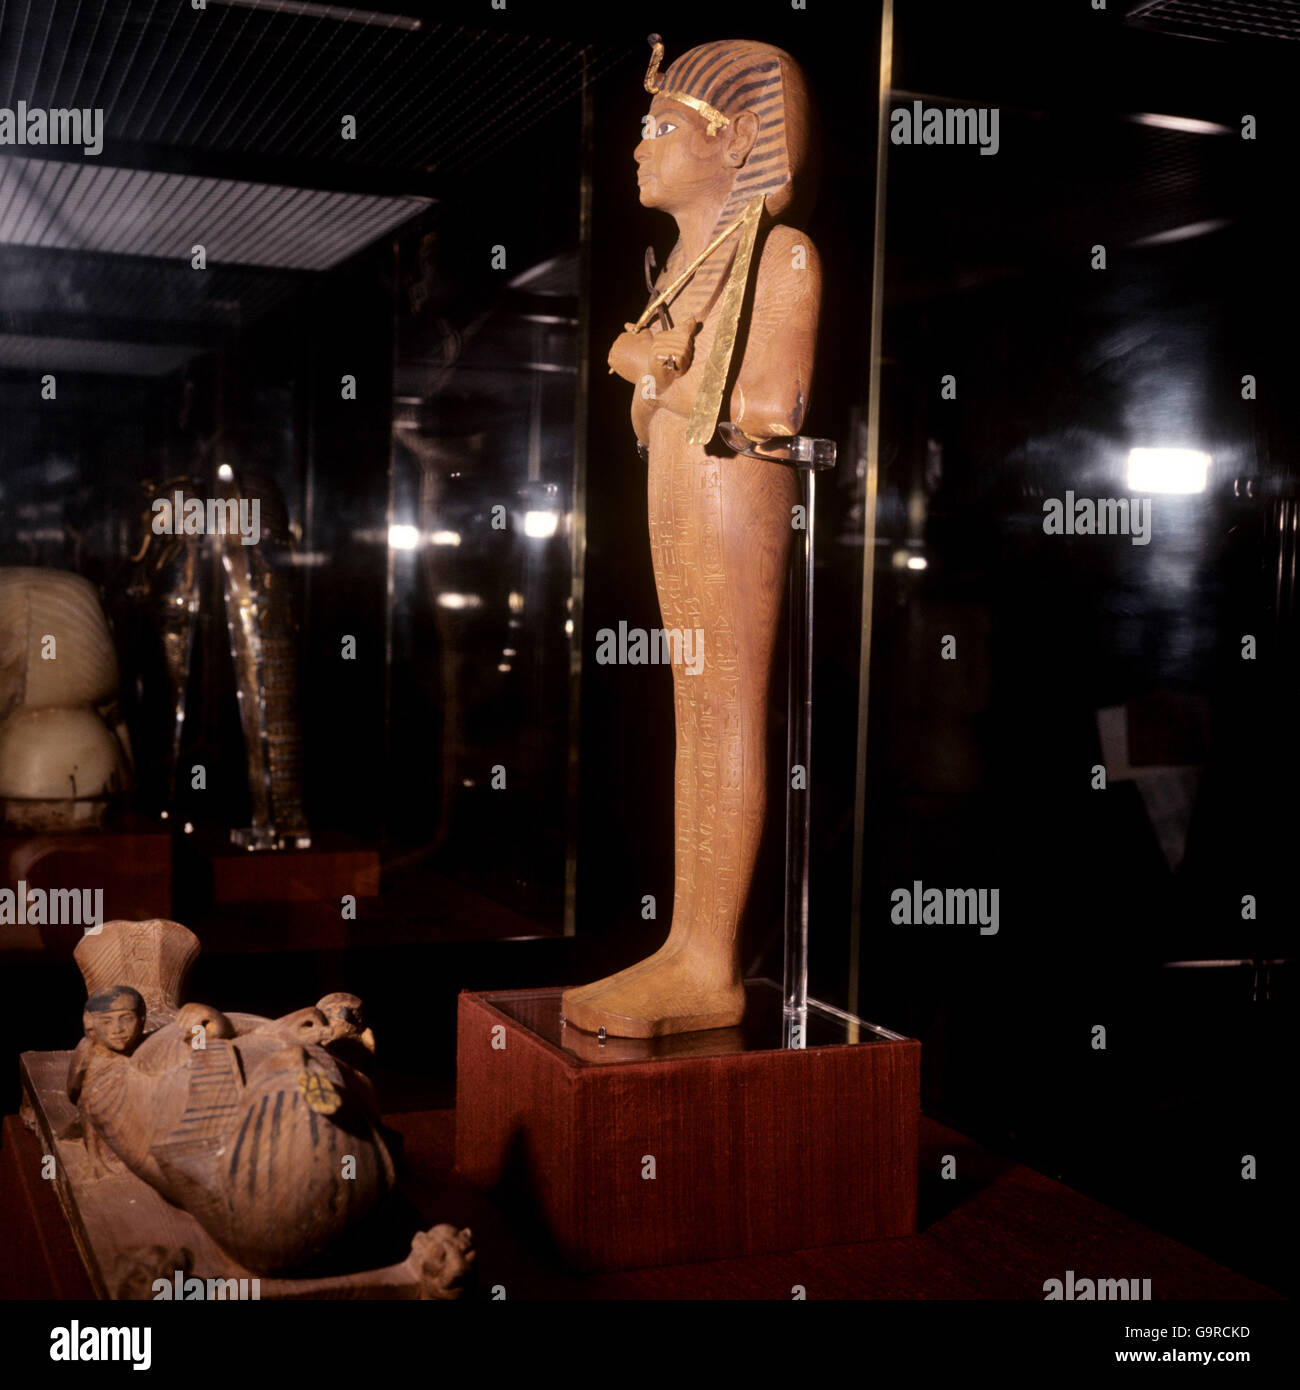 Mummy exhibition stock photos mummy exhibition stock images page 2 alamy - Eternity gran canaria ...